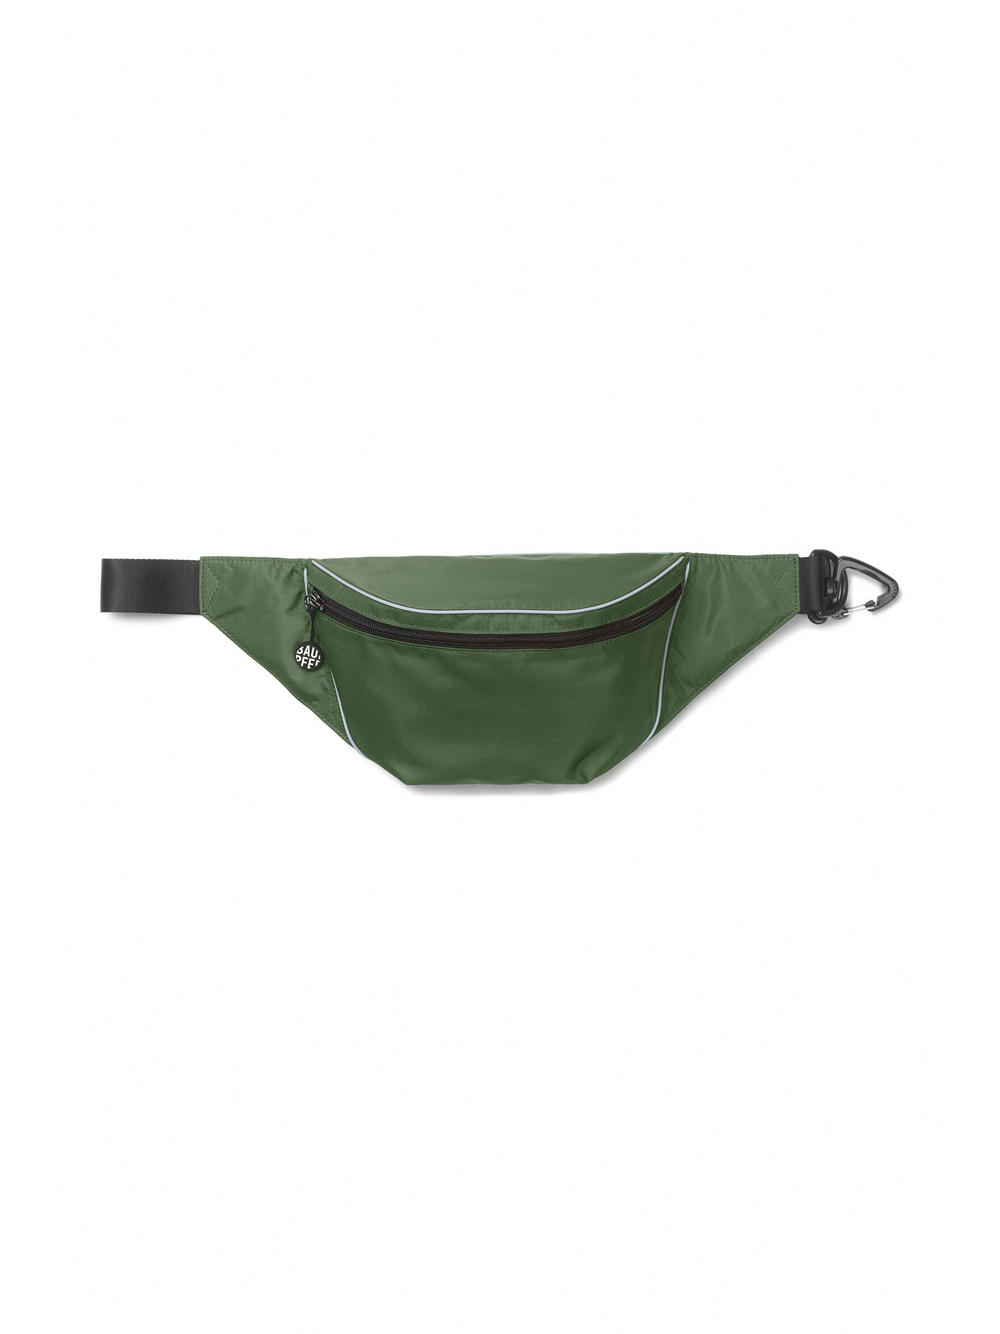 Kiva Belt Bag